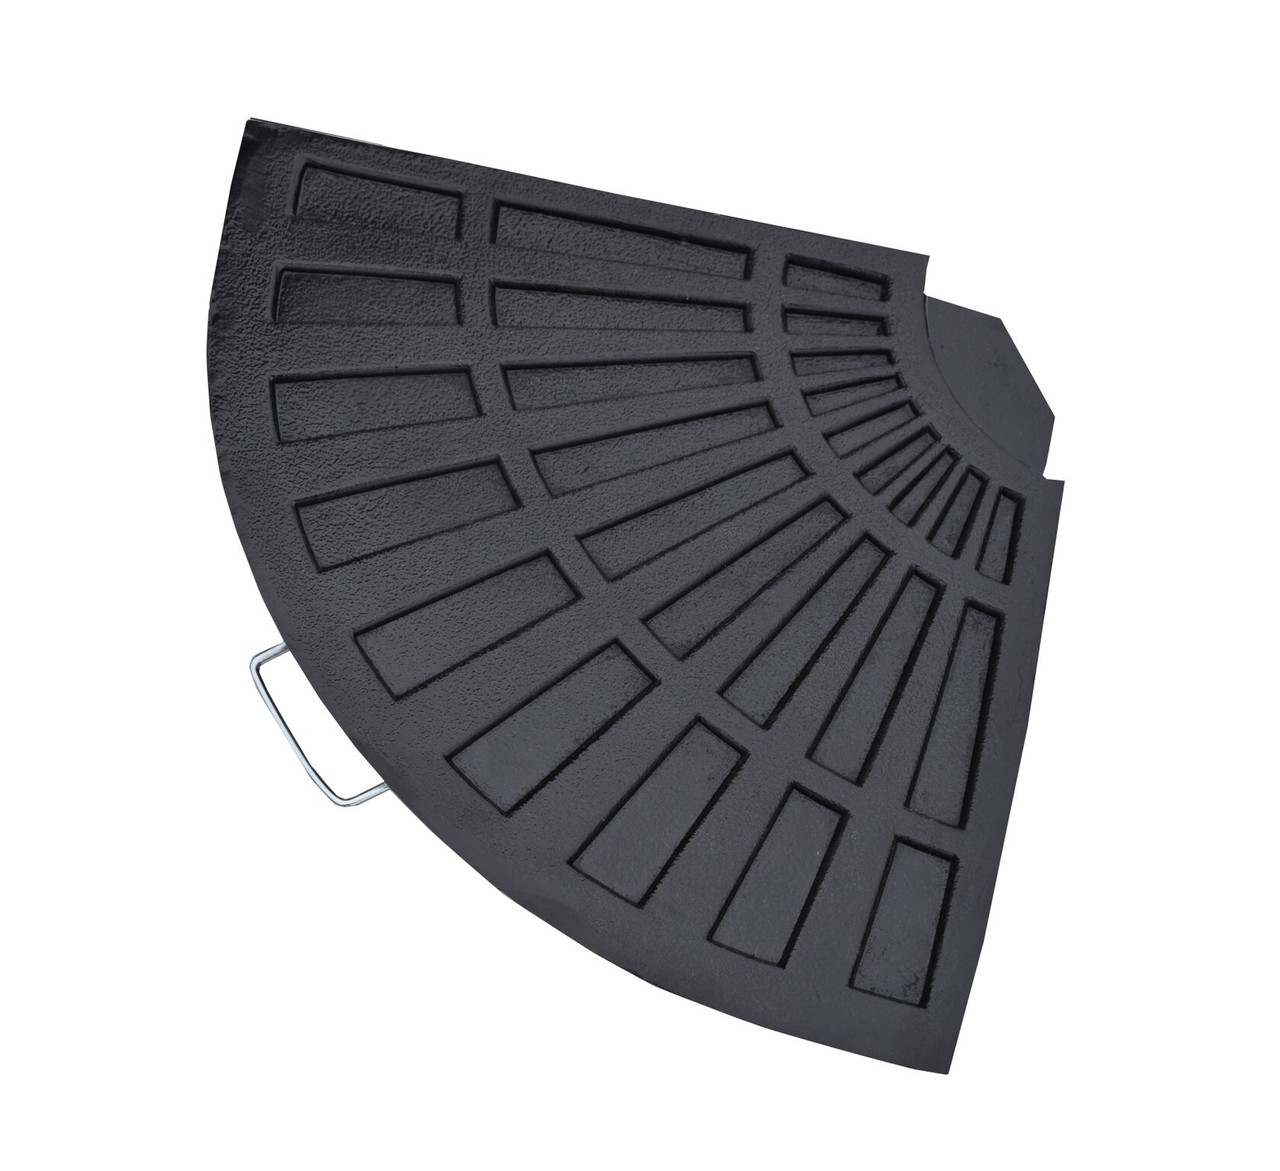 Bon 40 Lbs Black Rust Free Fan Base Weight For Patio Umbrella Stands   32732234